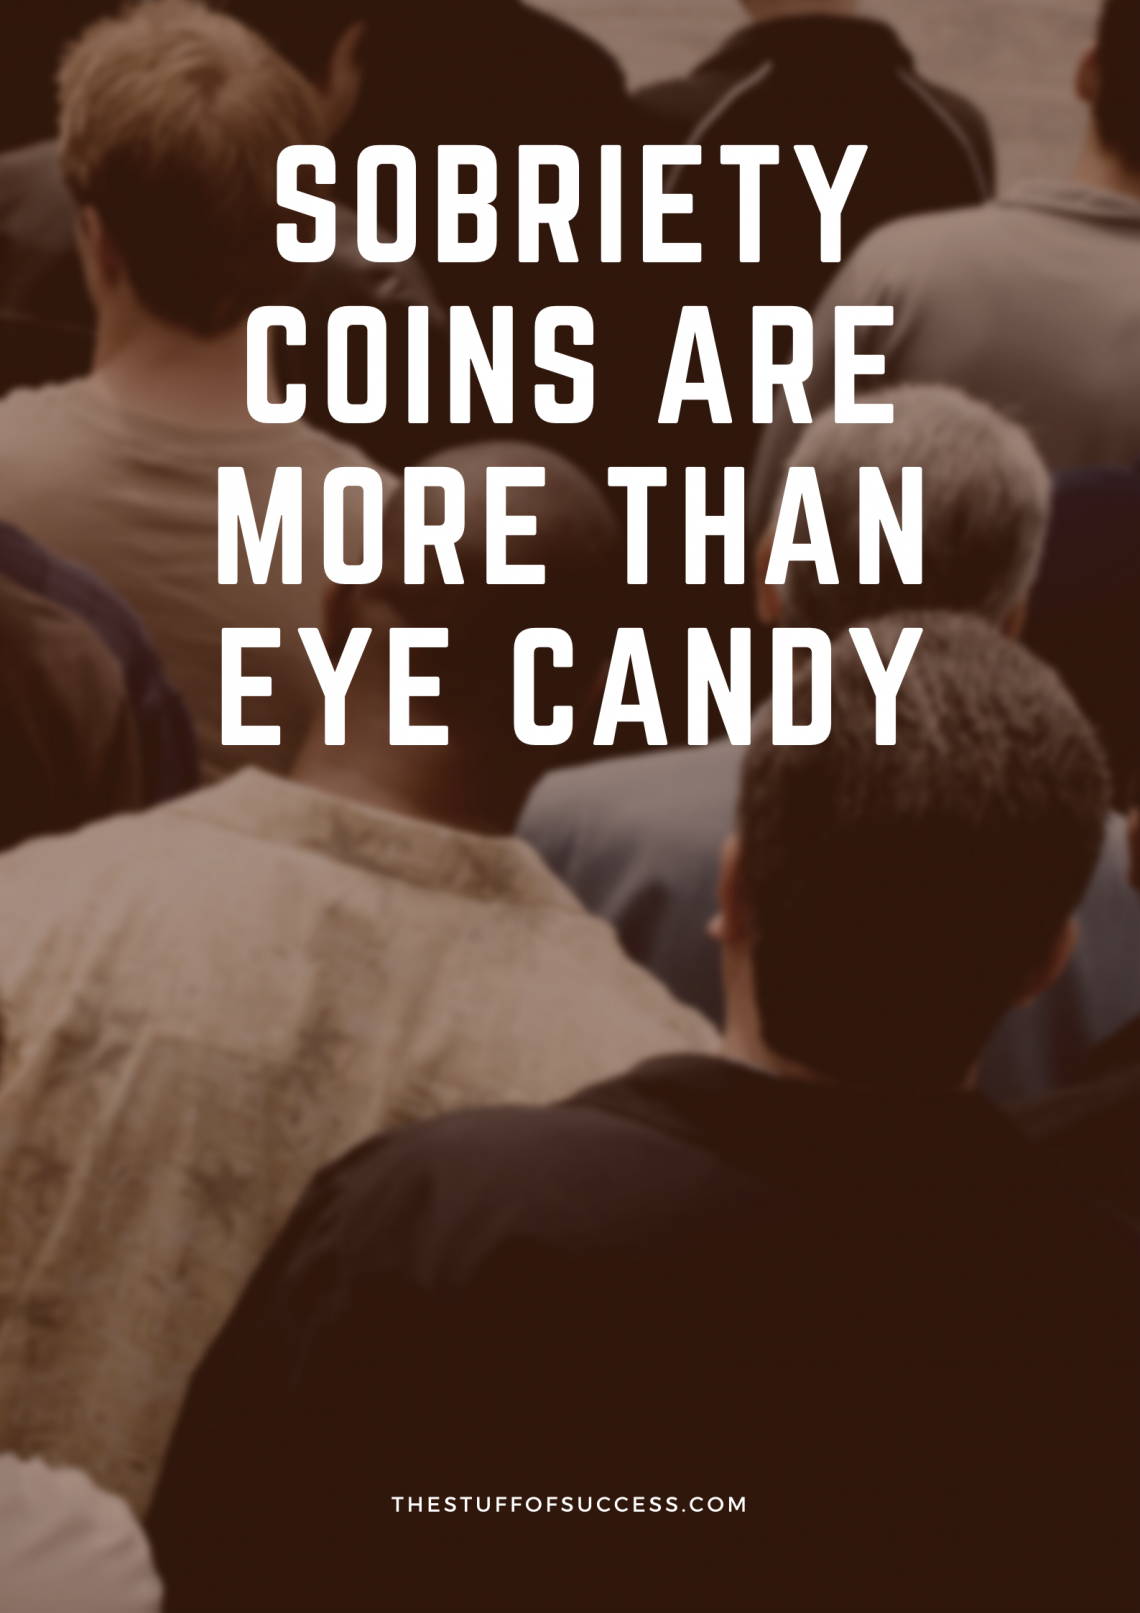 Sobriety Coins Are More Than Eye Candy